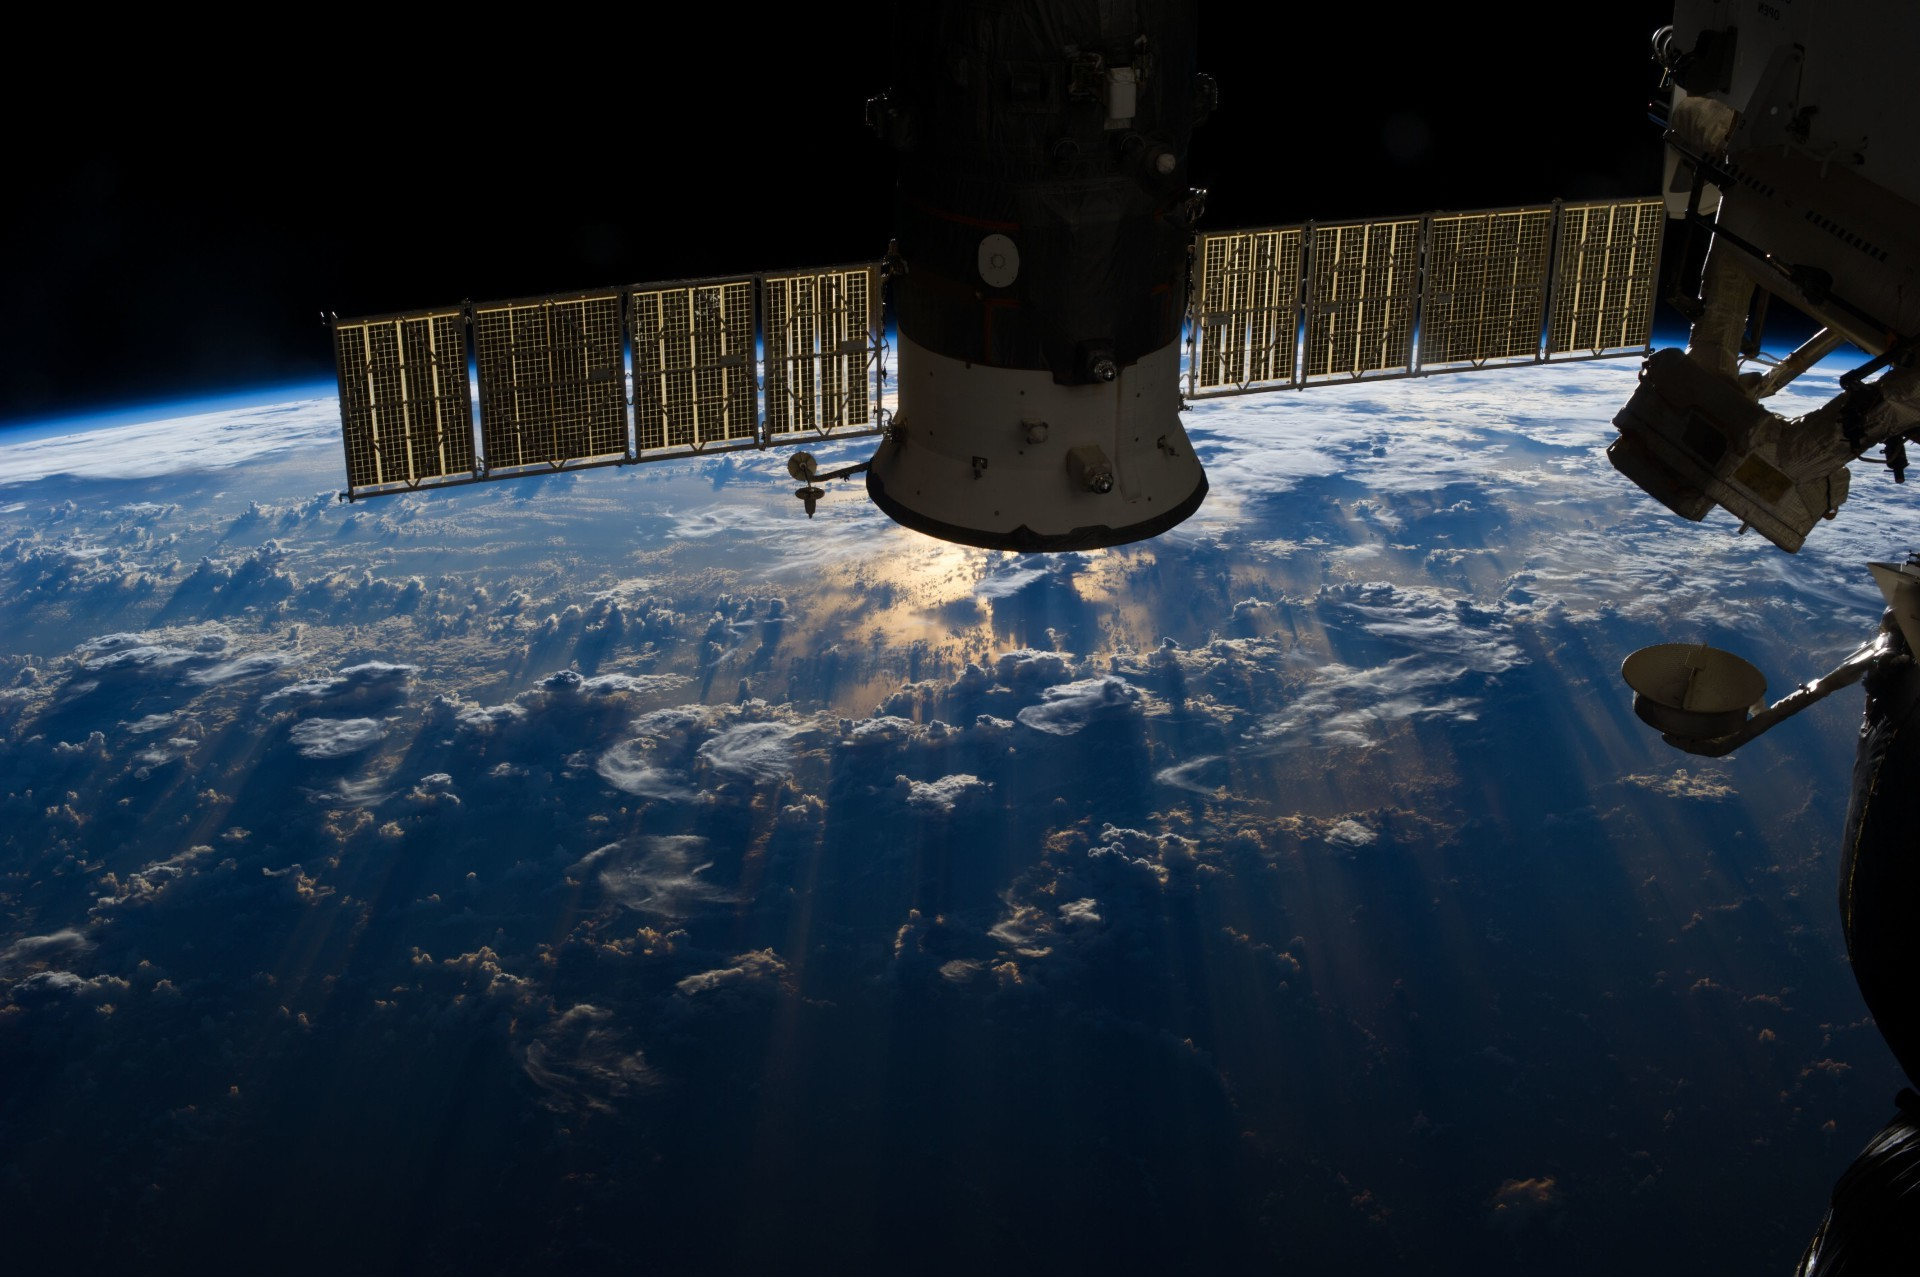 The ISS orbiting the Earth